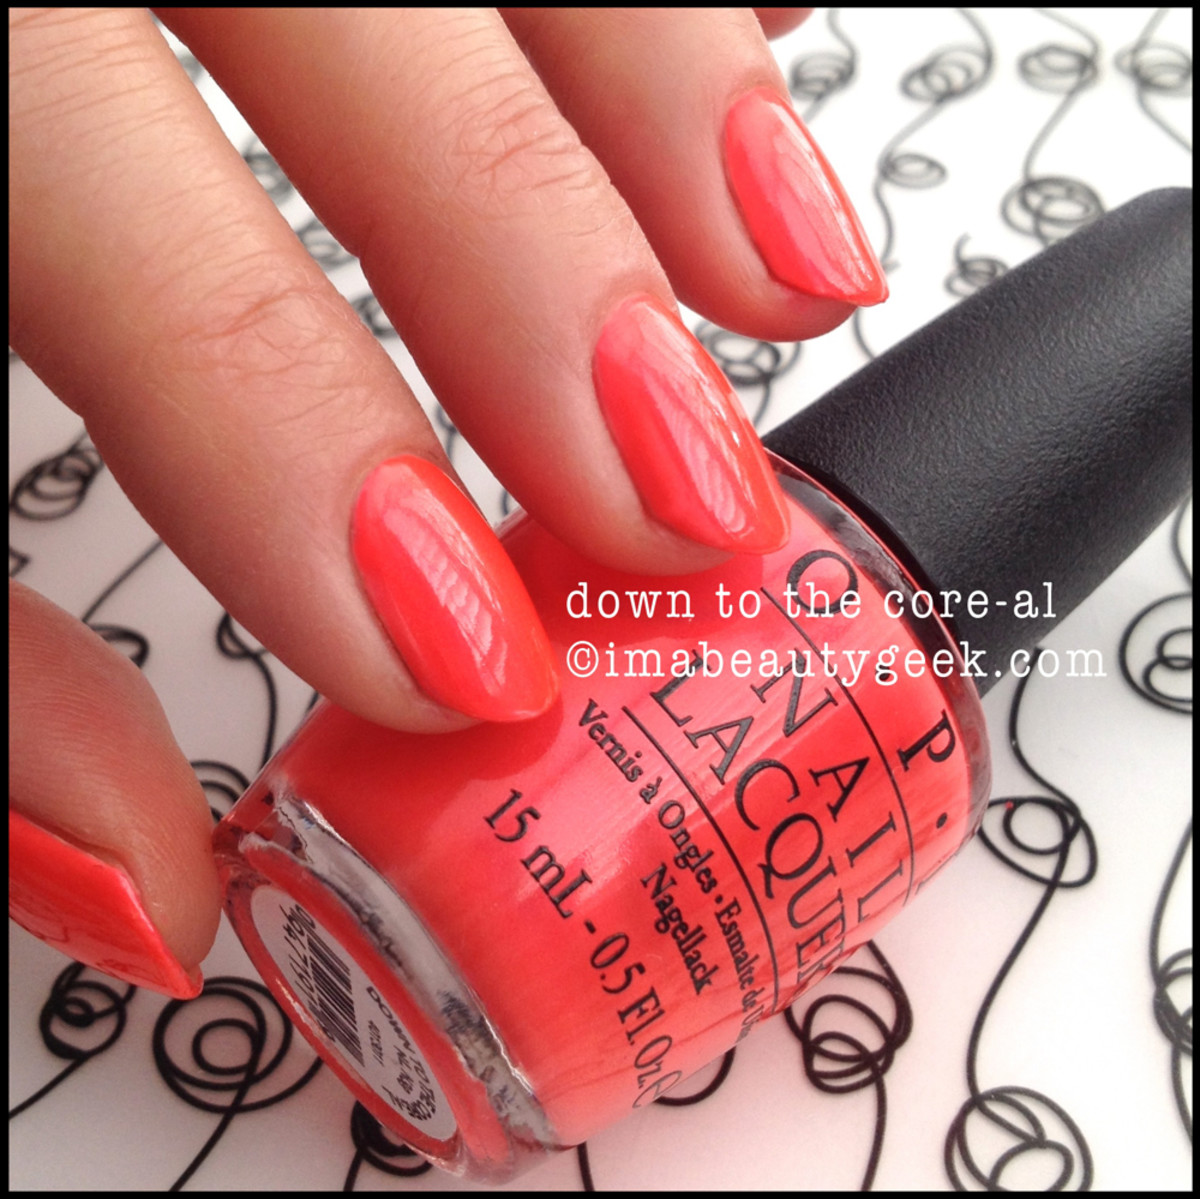 OPI Brights 2015_OPI Down to the Core-al Neon 2014